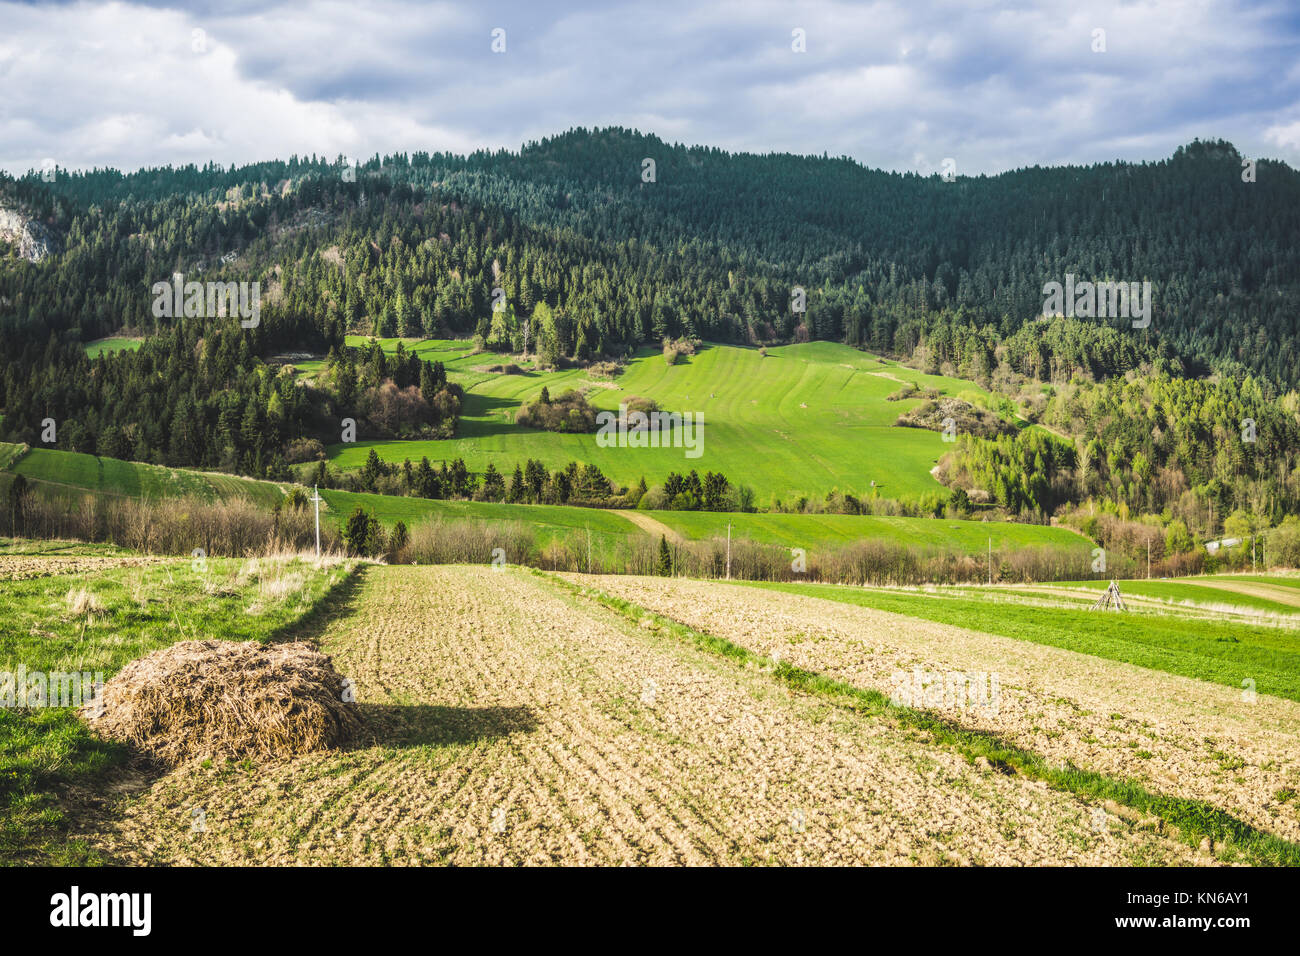 Green spring hills in the Pieniny mountains in Poland with hay in the rural setting - Stock Image